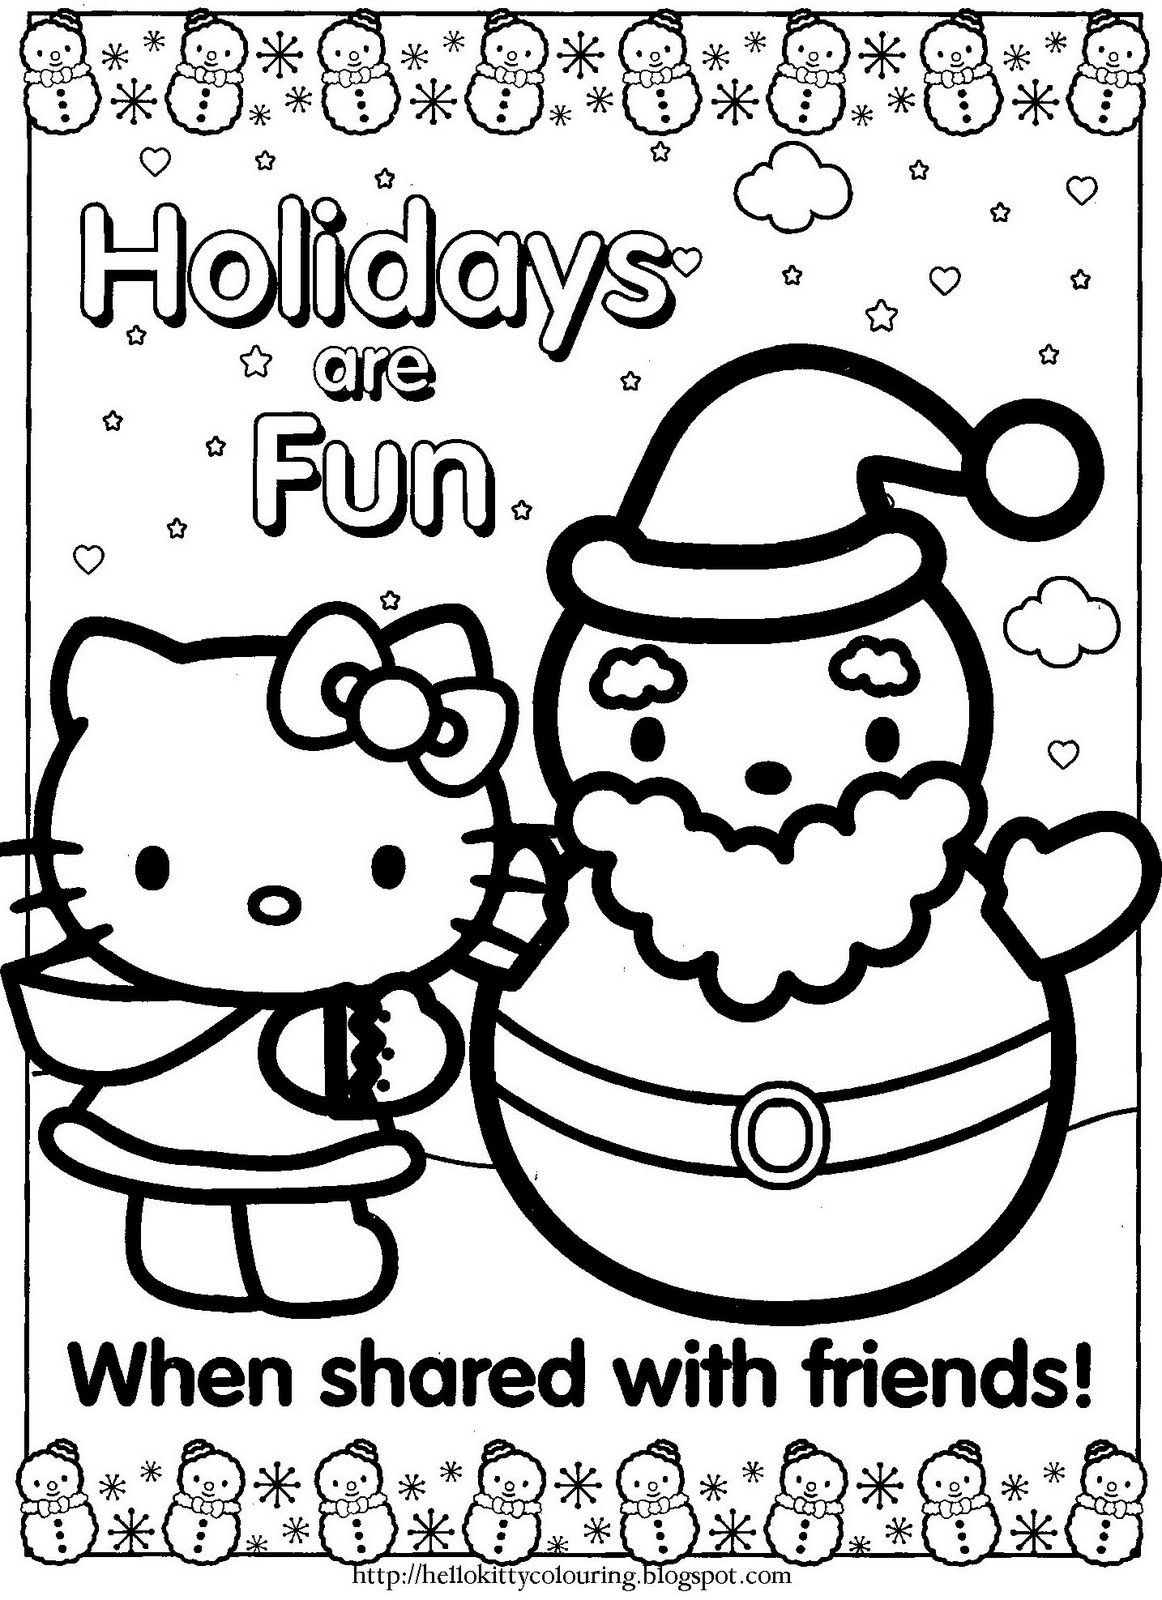 Hello Kitty Xmas Idear From Christina Juse This For A Card